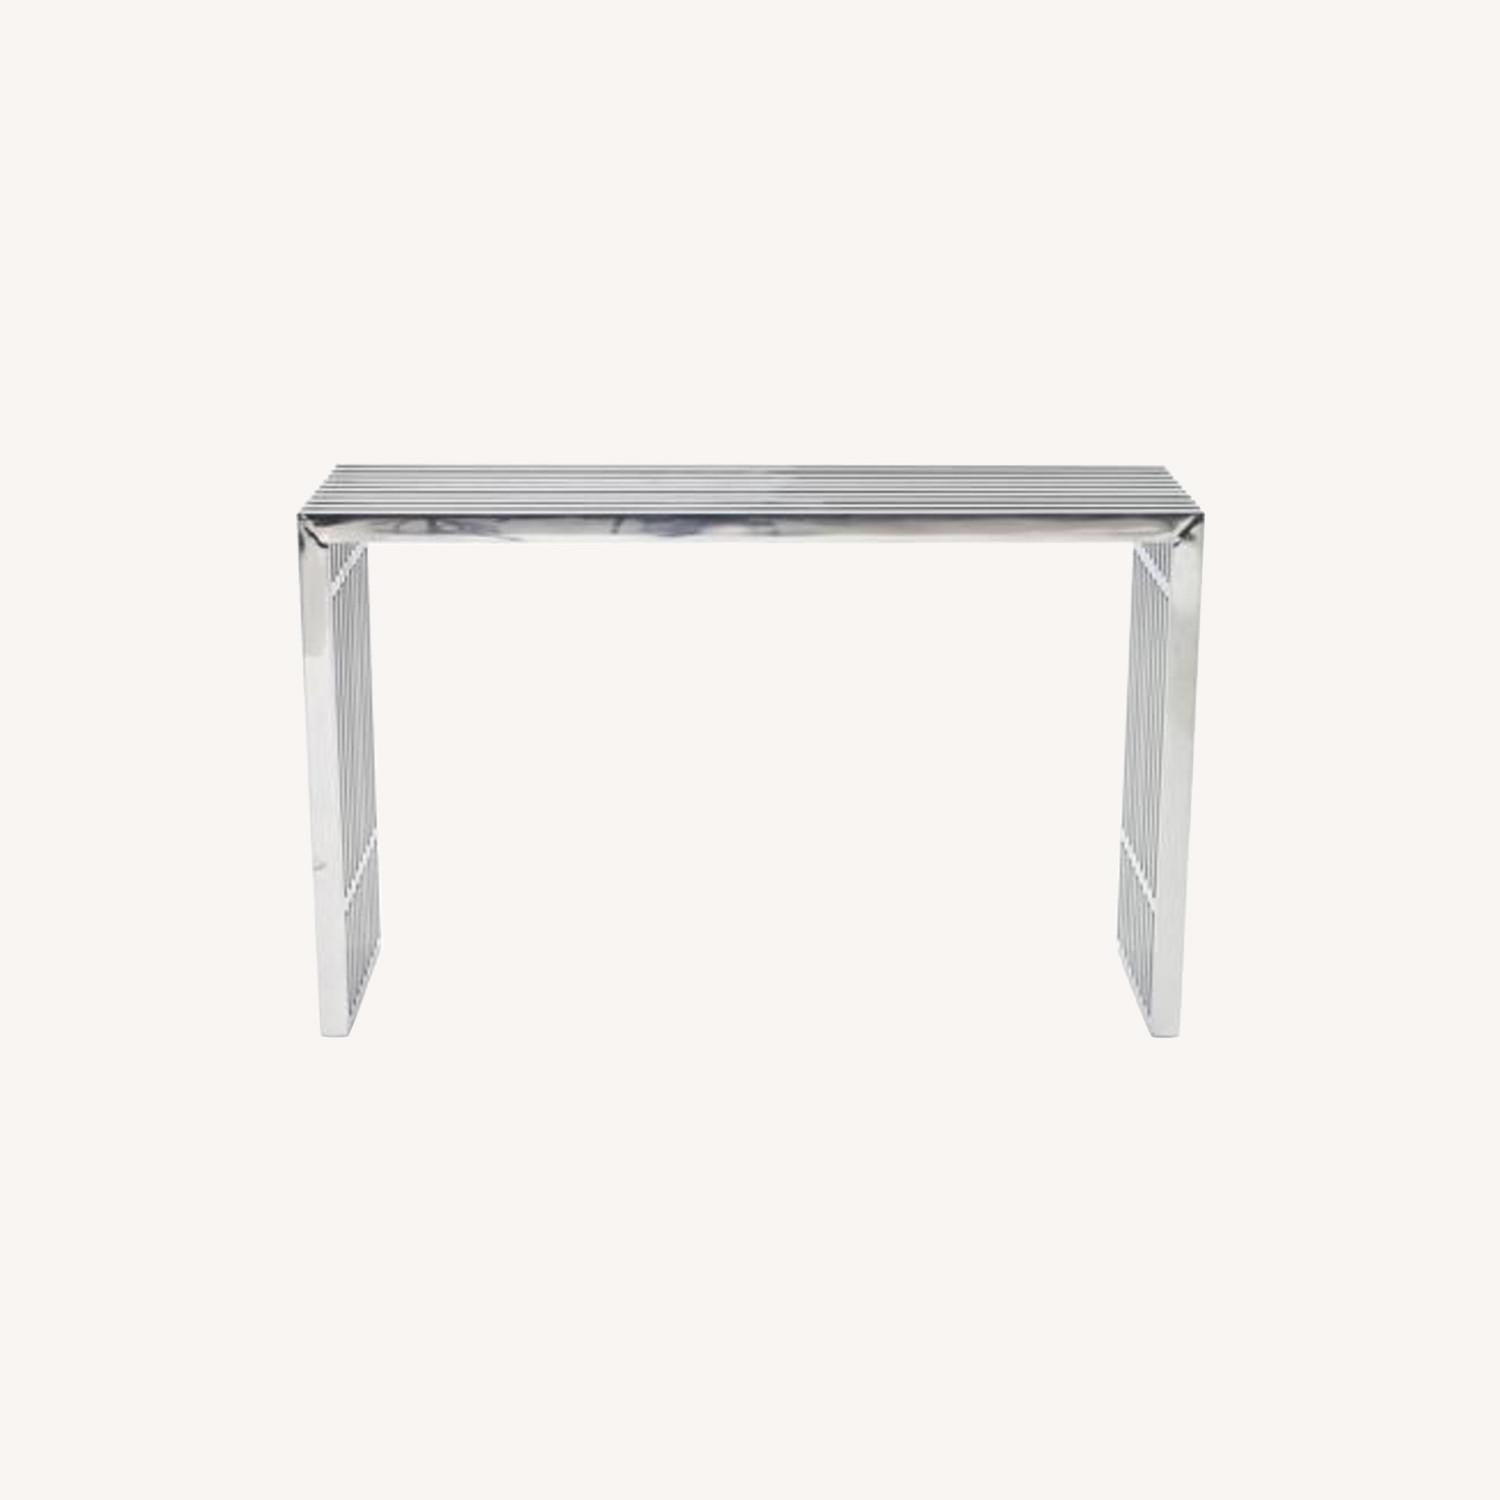 Modern Console Table In Silver Tubular Steel - image-5